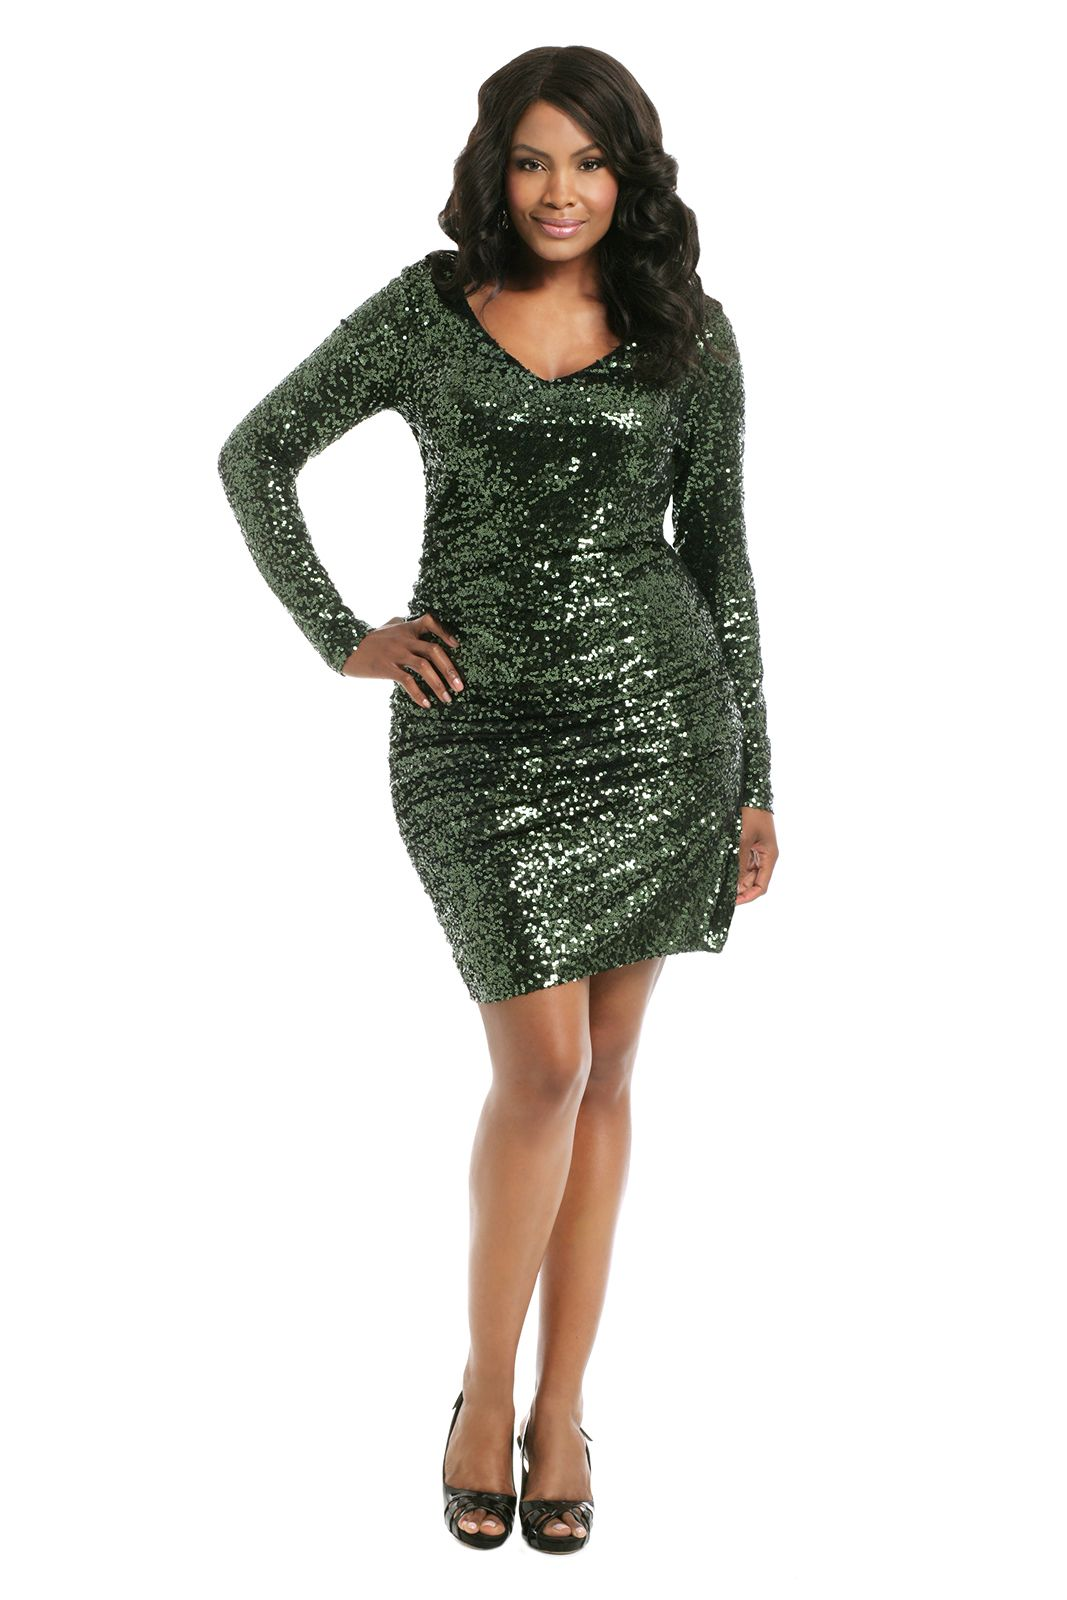 0e0f8922f7896 Rent The Runway Plus Size - Formal Wear For Curvy Women